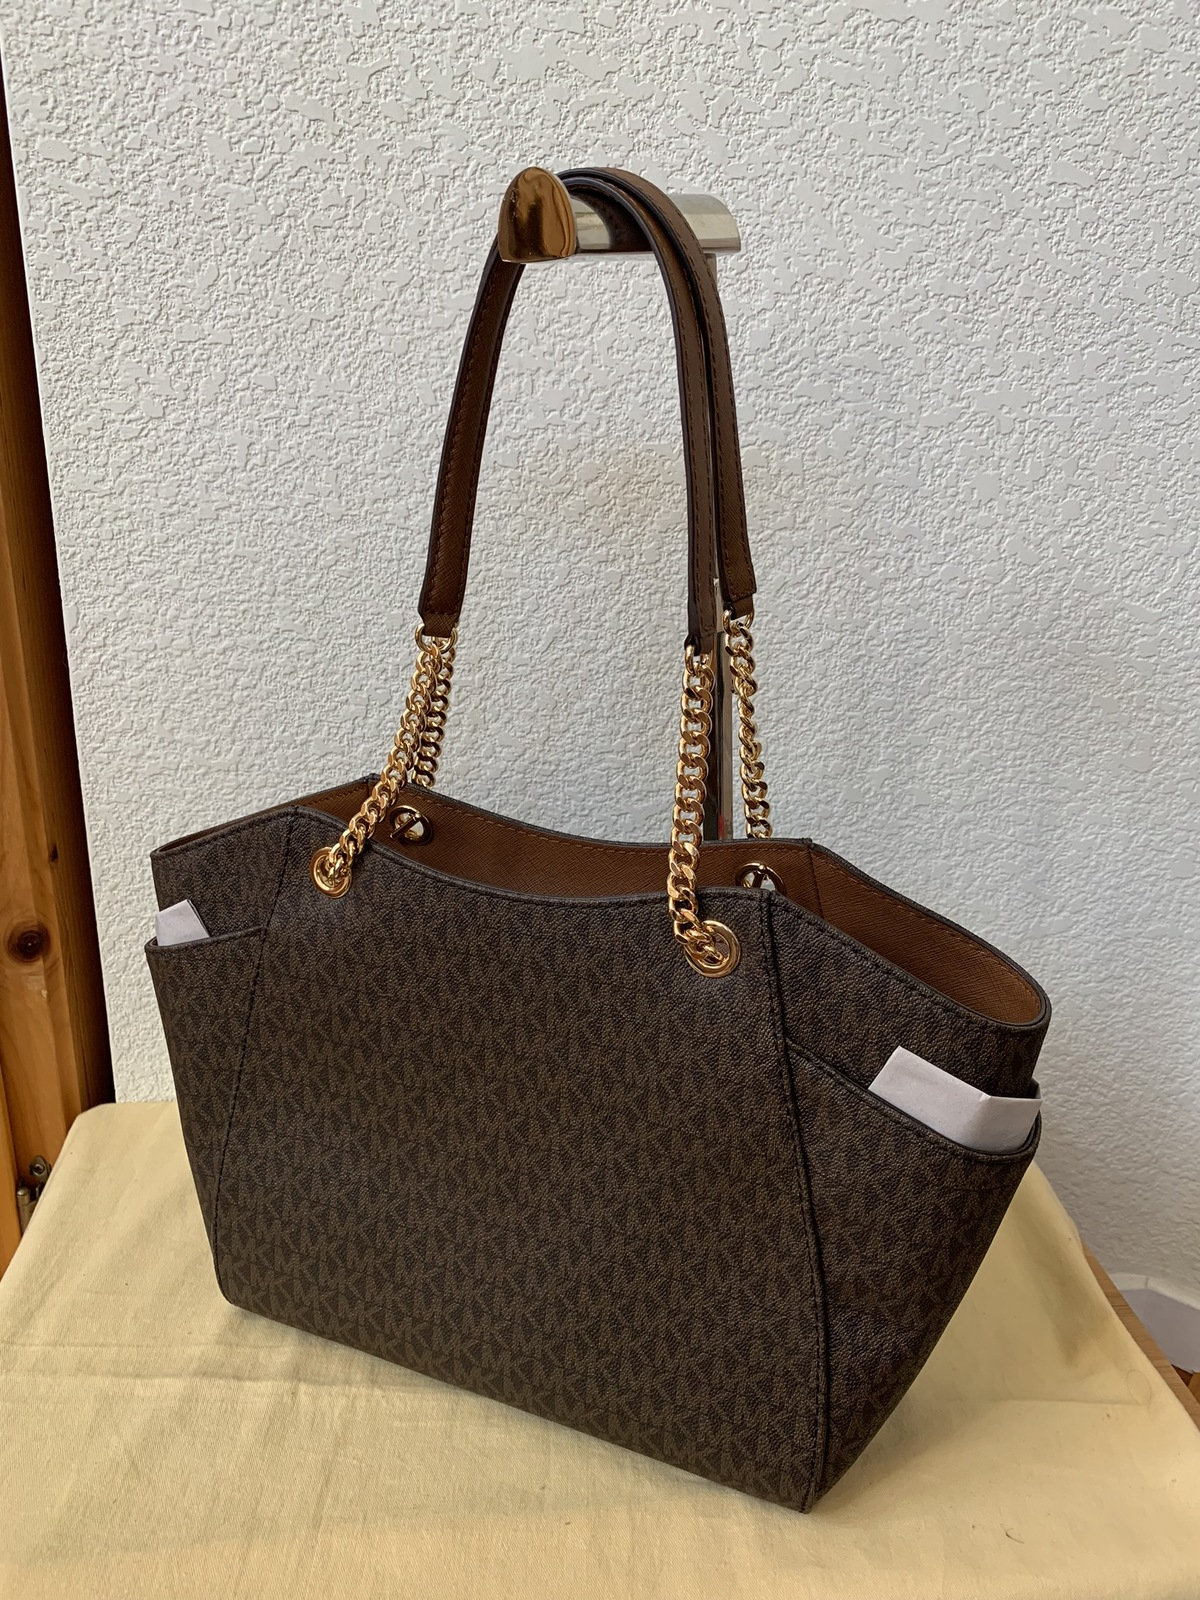 $378 NWT Michael Kors Brown Jet Set Travel Large Chain Tote